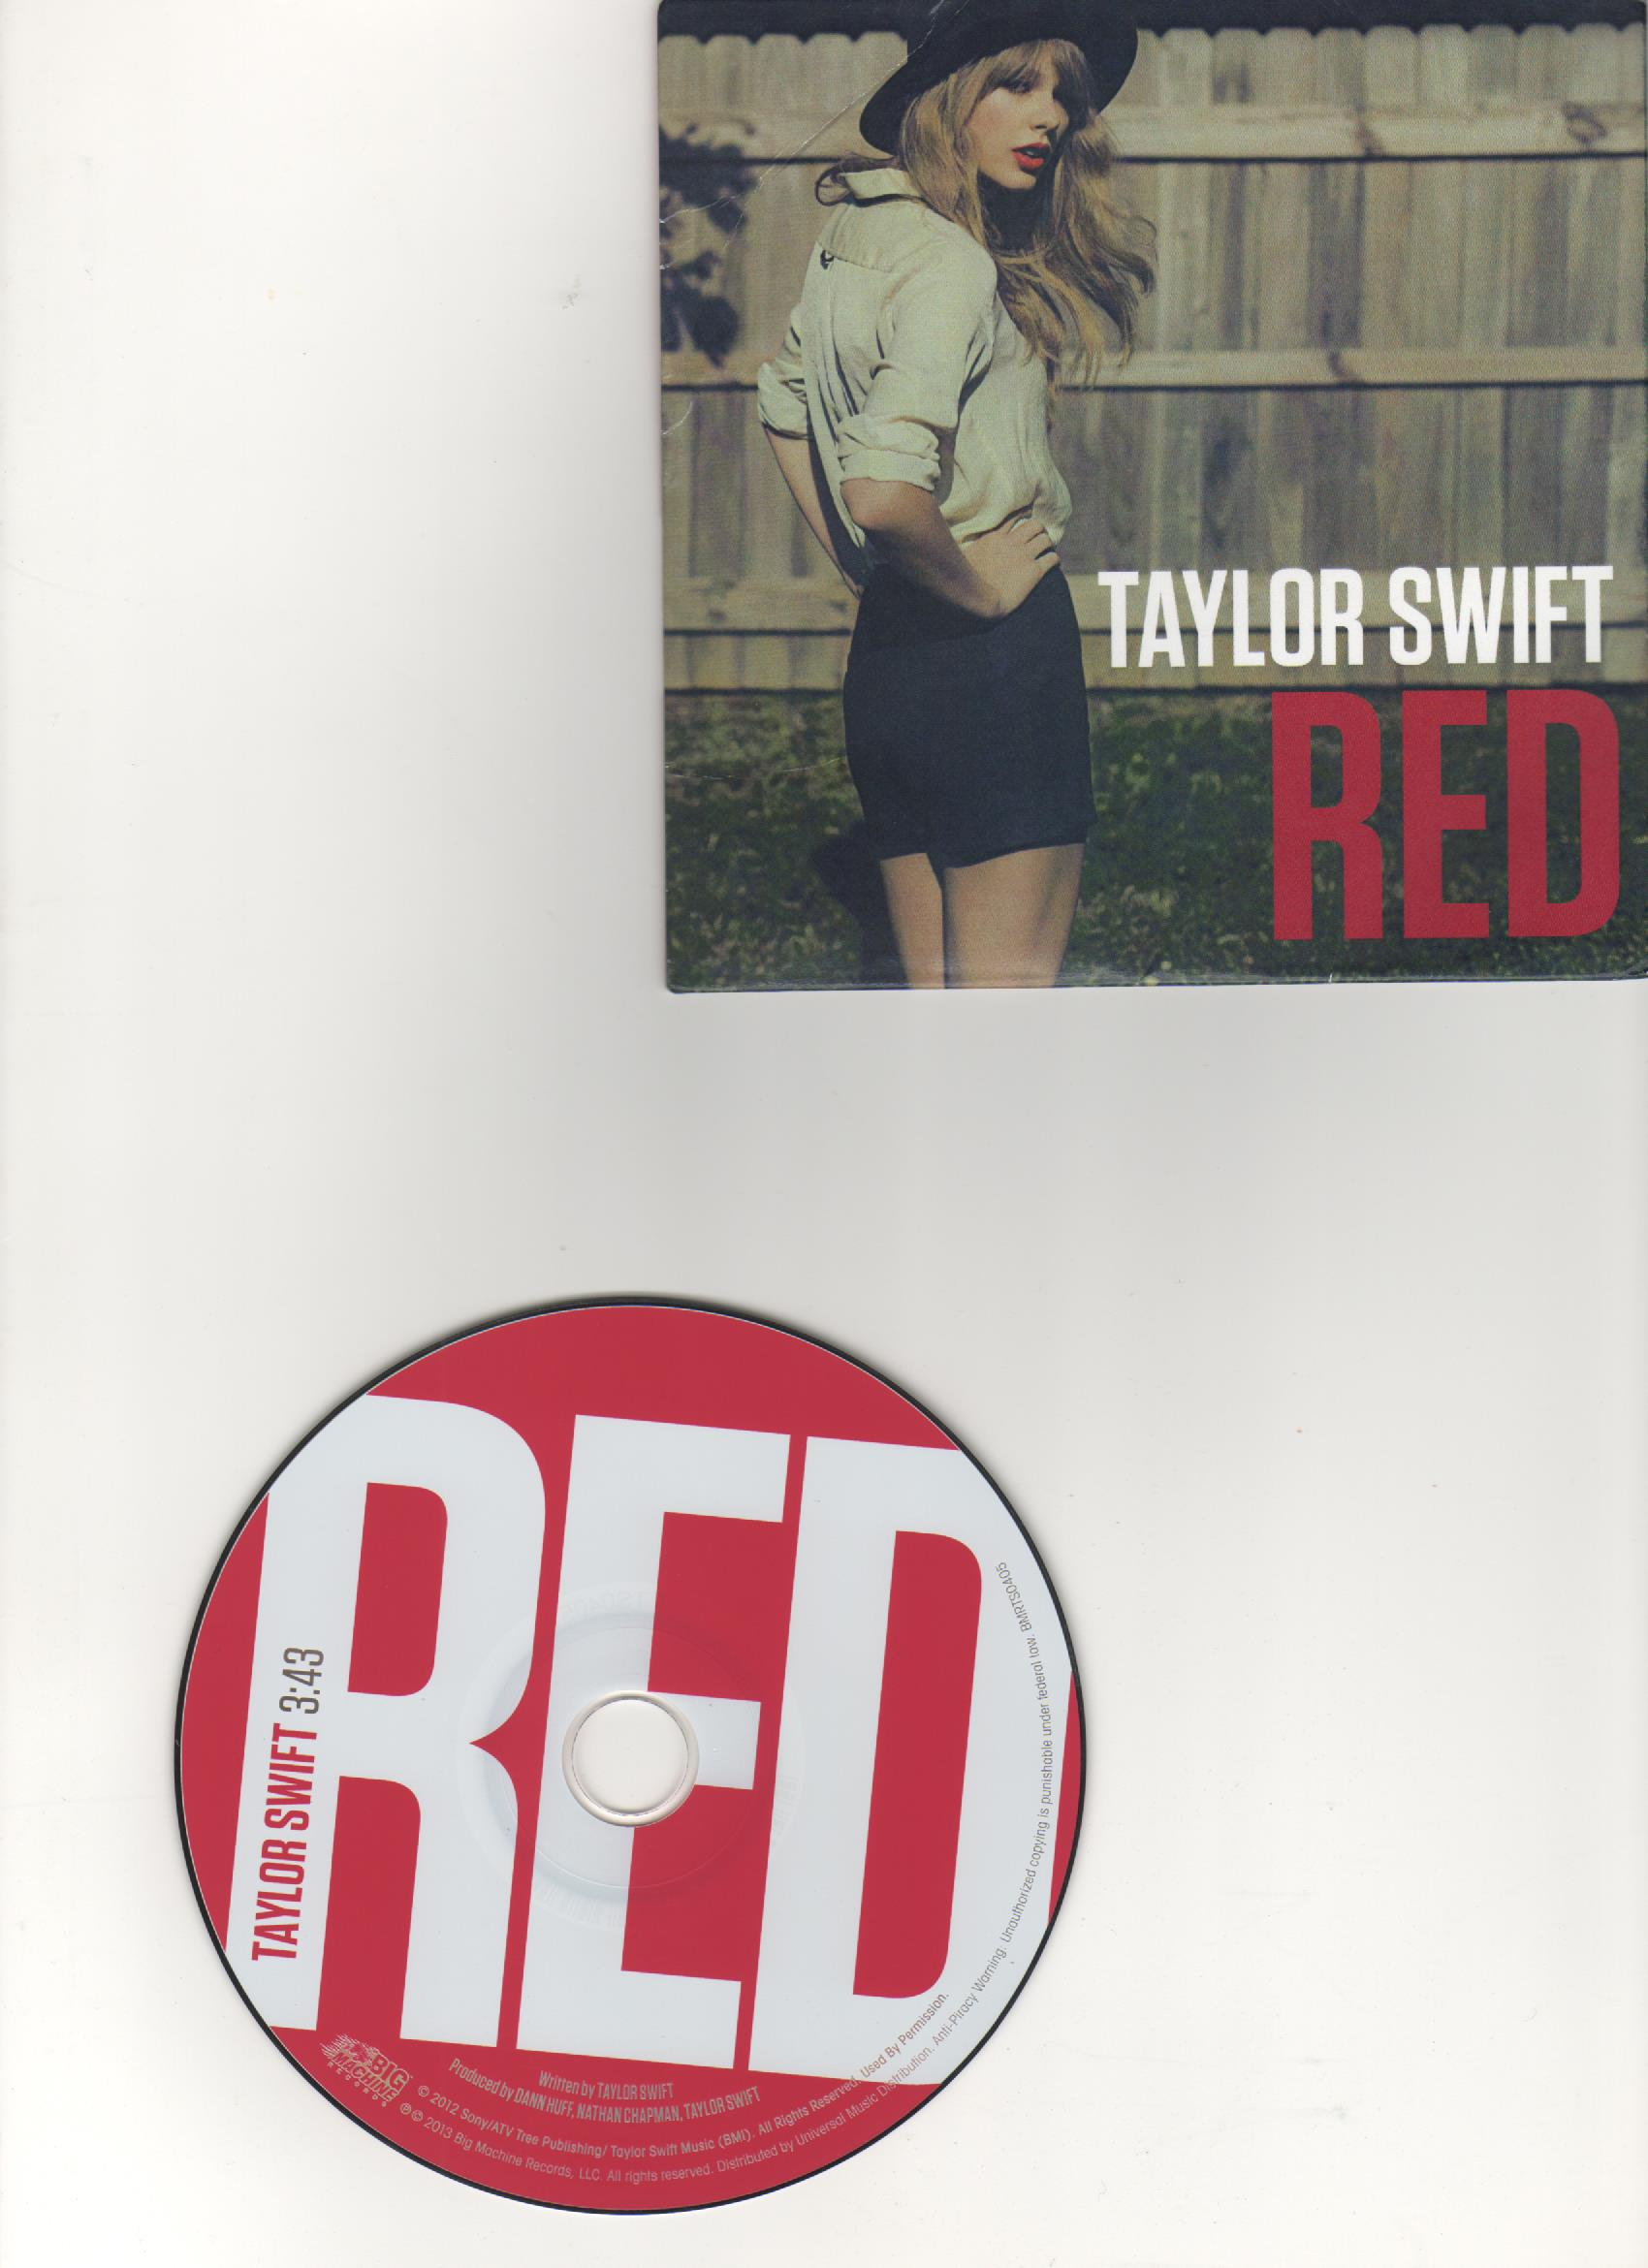 RED CD single